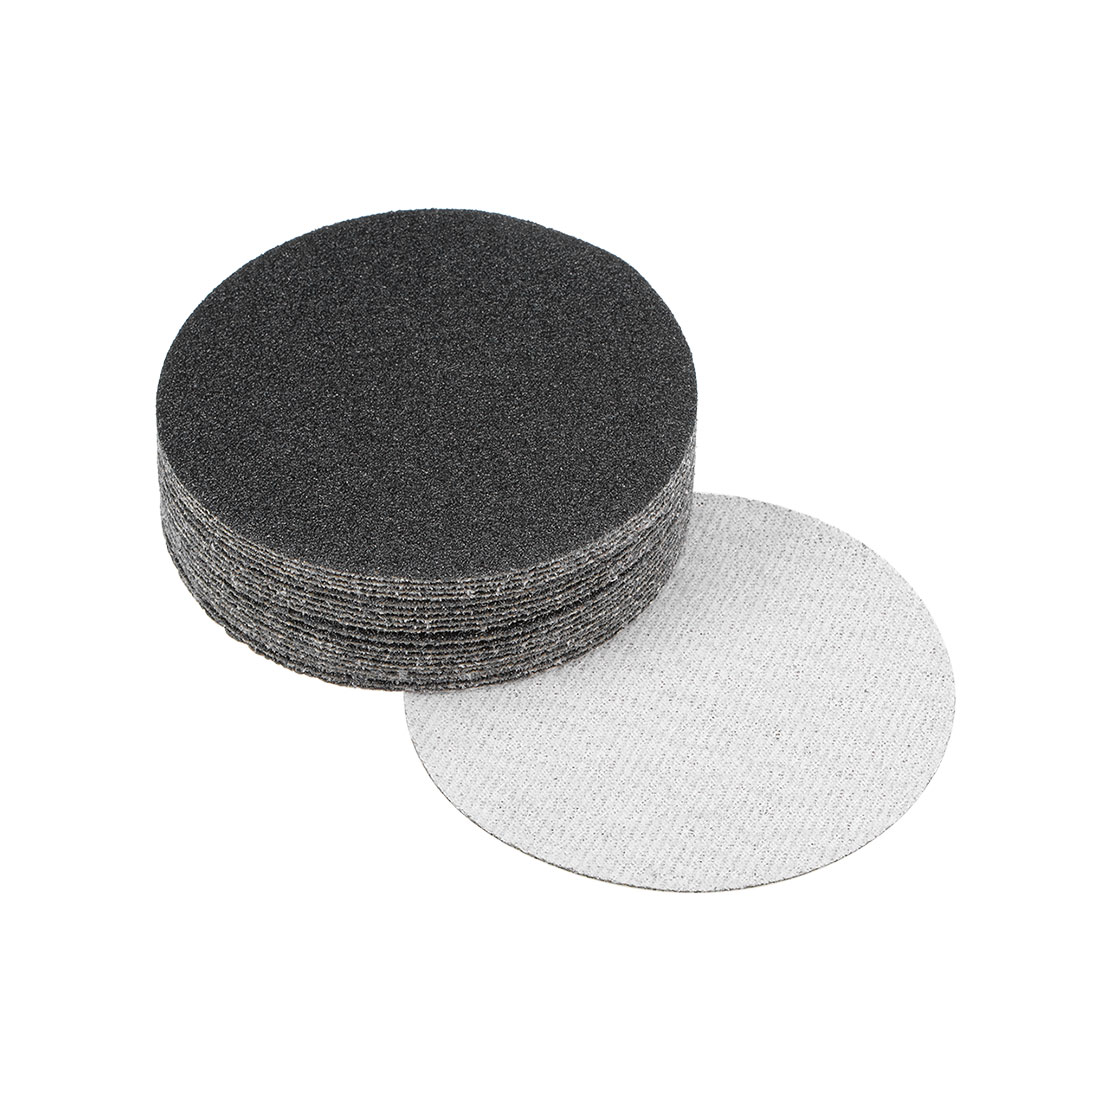 3 inch Wet Dry Discs 60 Grit Hook and Loop Sanding Disc Silicon Carbide 20pcs